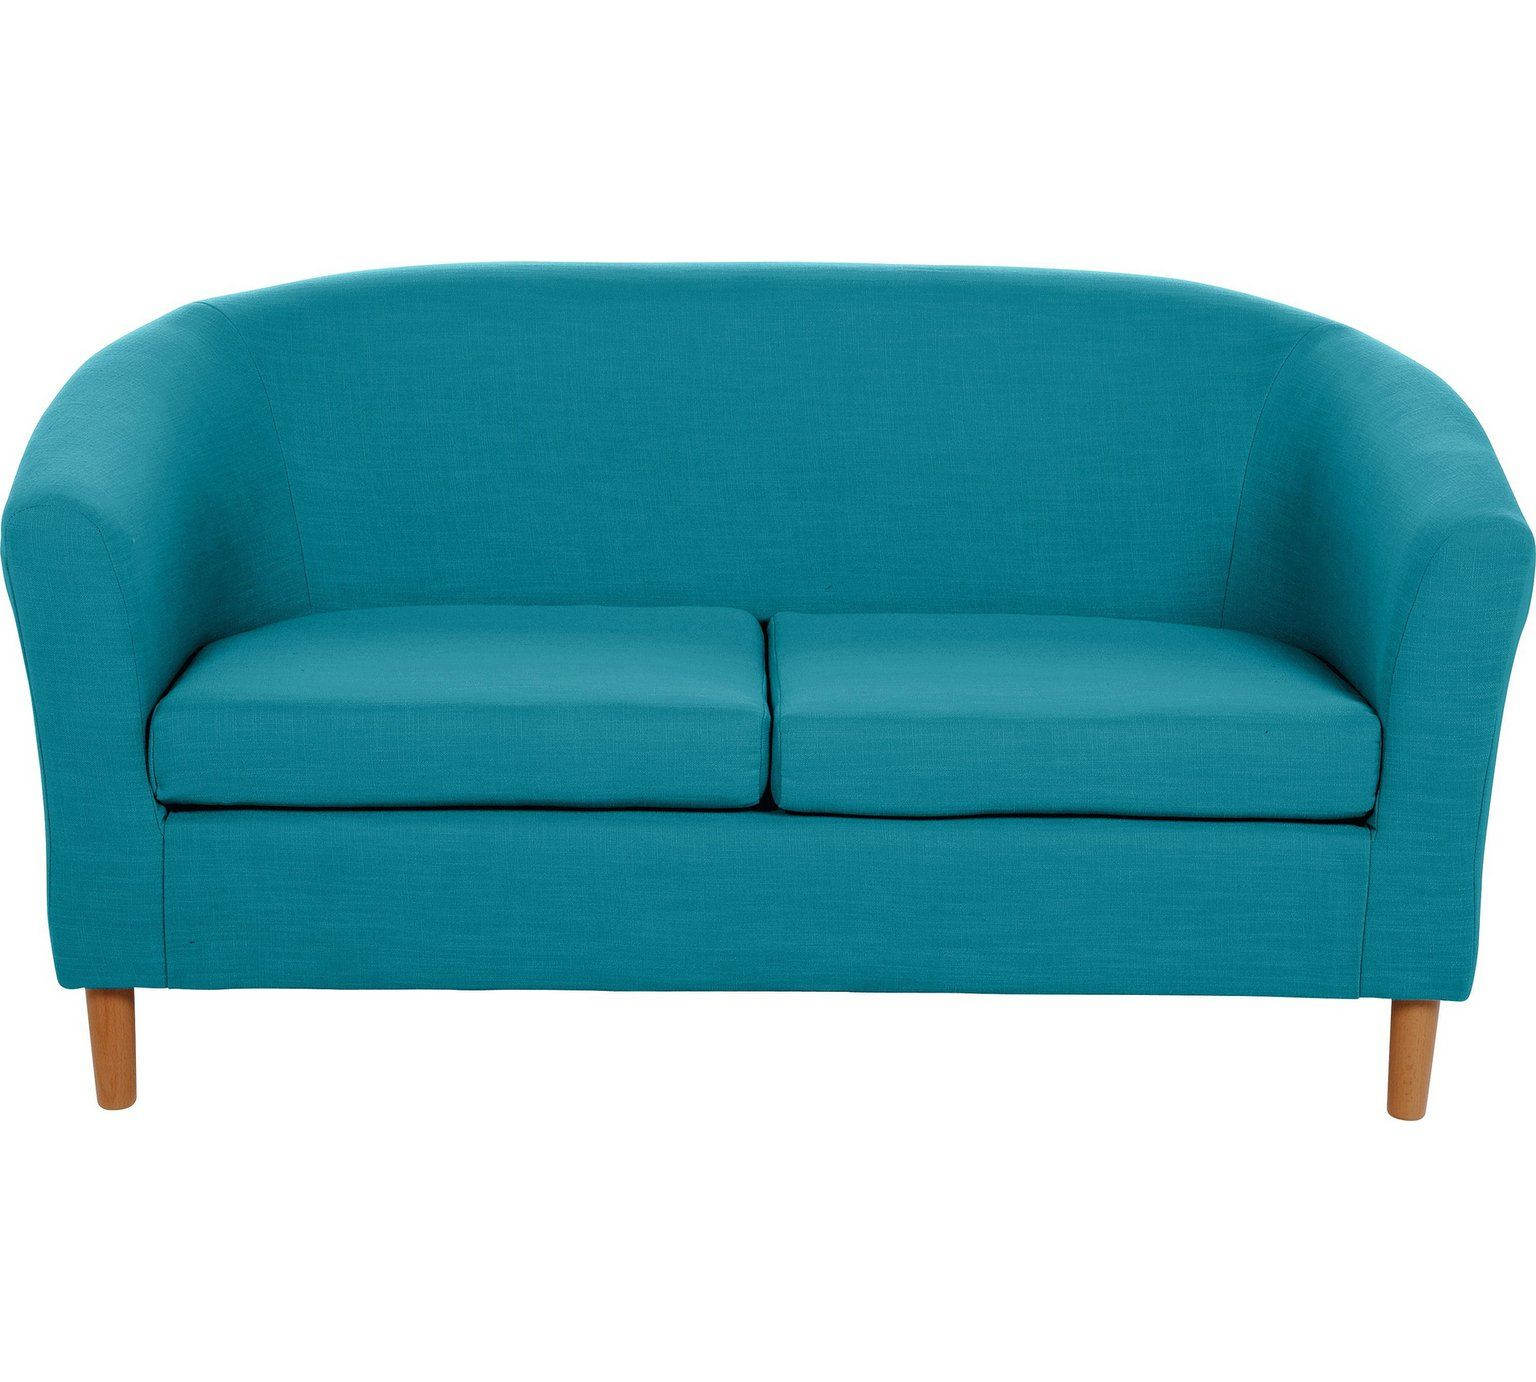 Buy HOME 2 Seater Fabric Tub Sofa - Teal at Argos.co.uk - Your ...